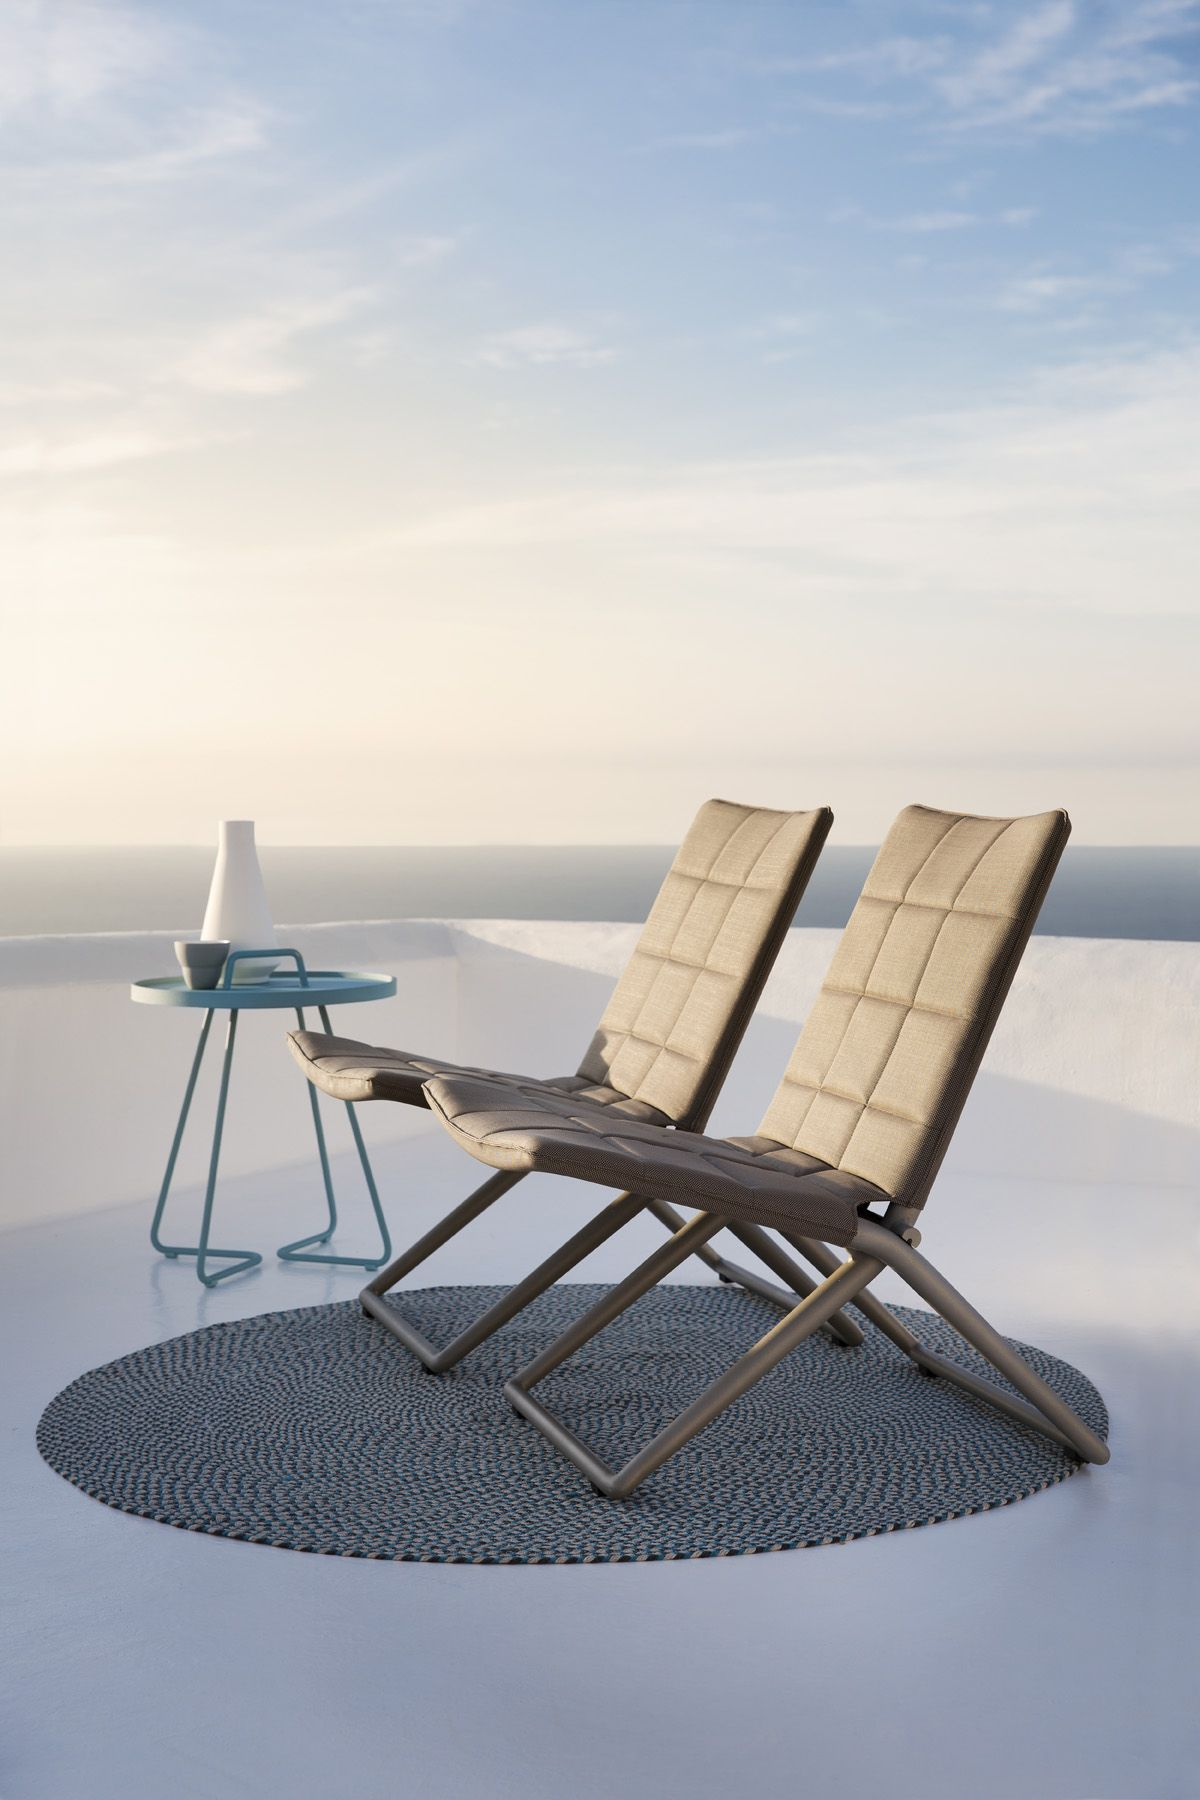 Traveller by Caneline. Folding lounge chair for both